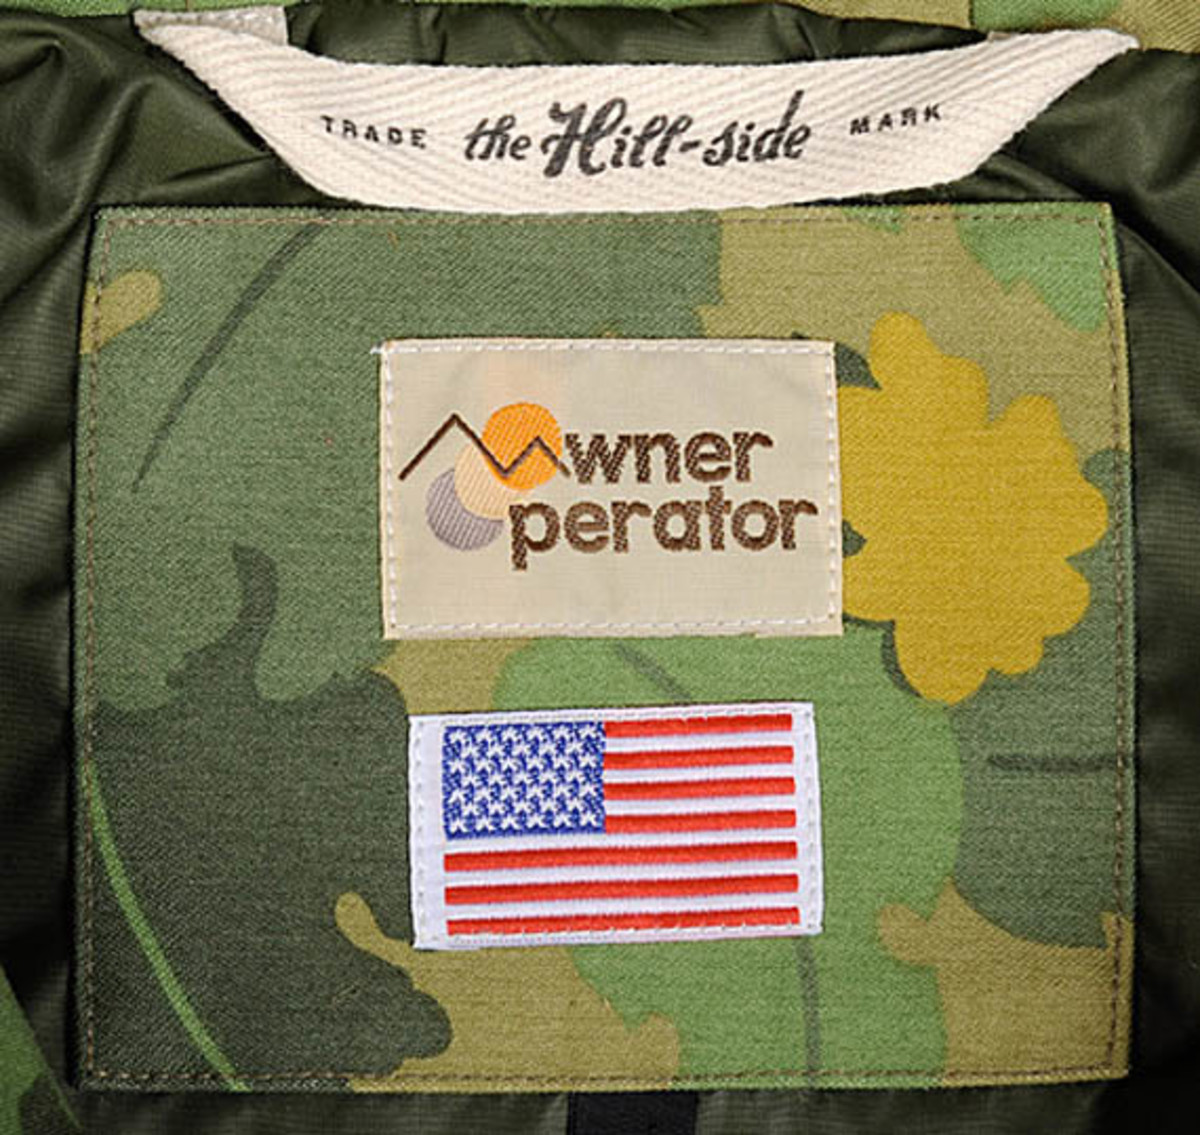 the-hill-side-owner-operator-leaf-camo-chino-pack-anorak-07